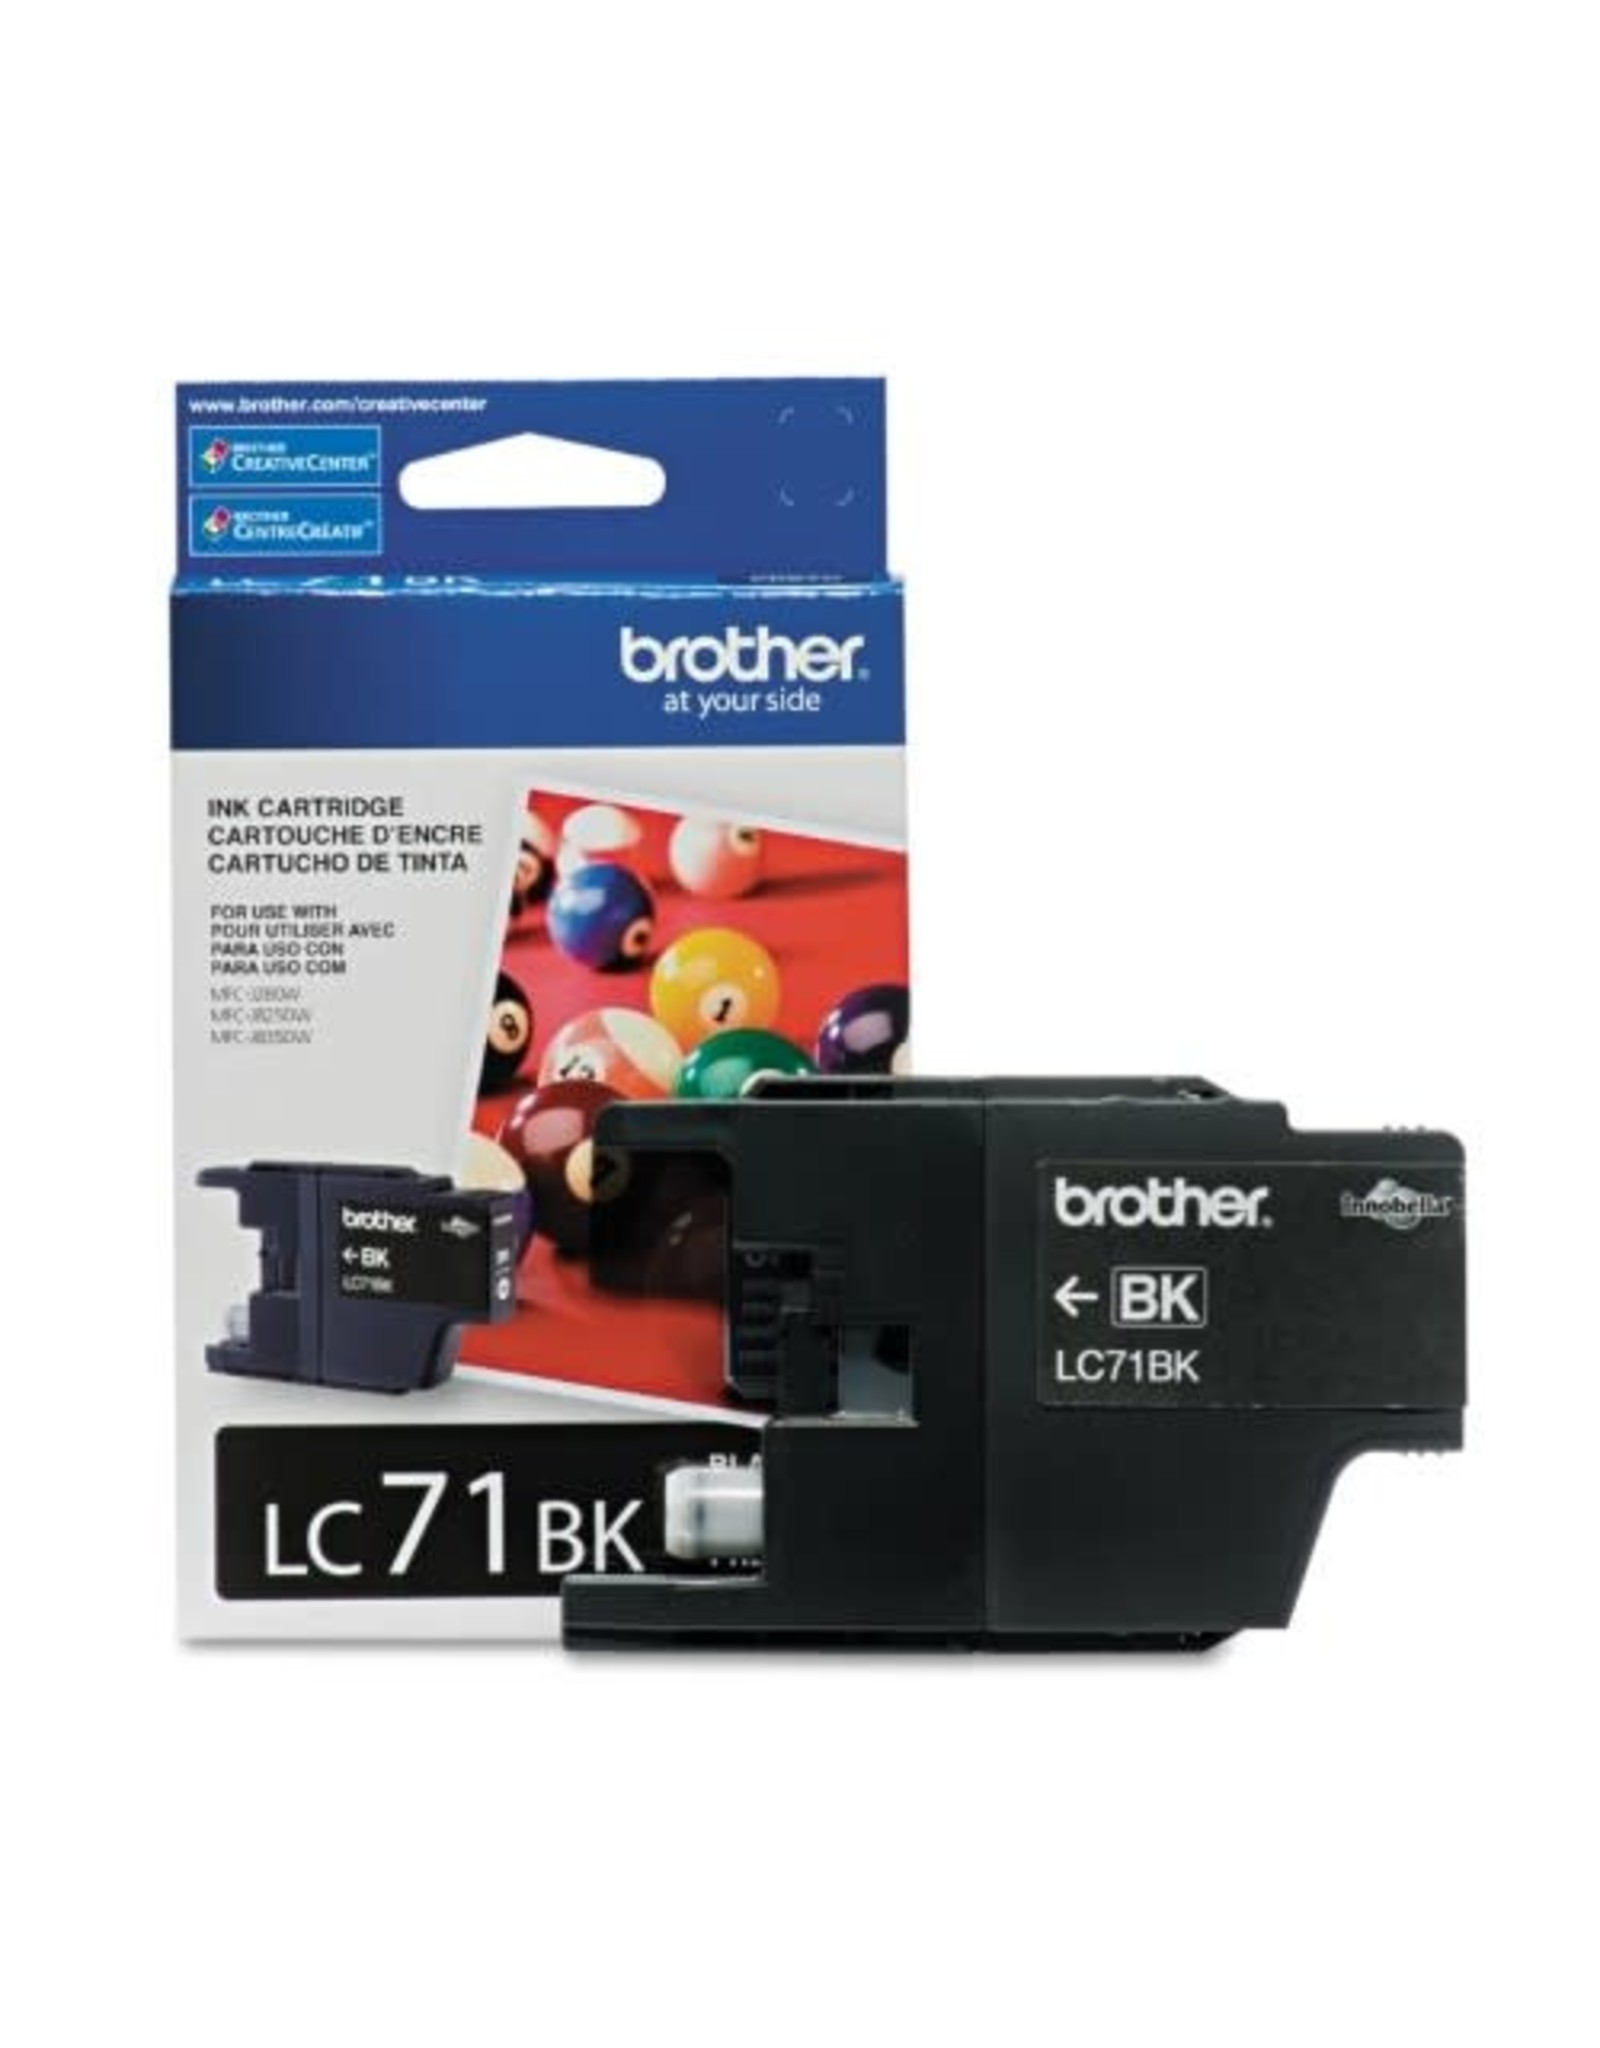 Brother INKJET CARTRIDGE-BROTHER BLACK STANDARD YIELD